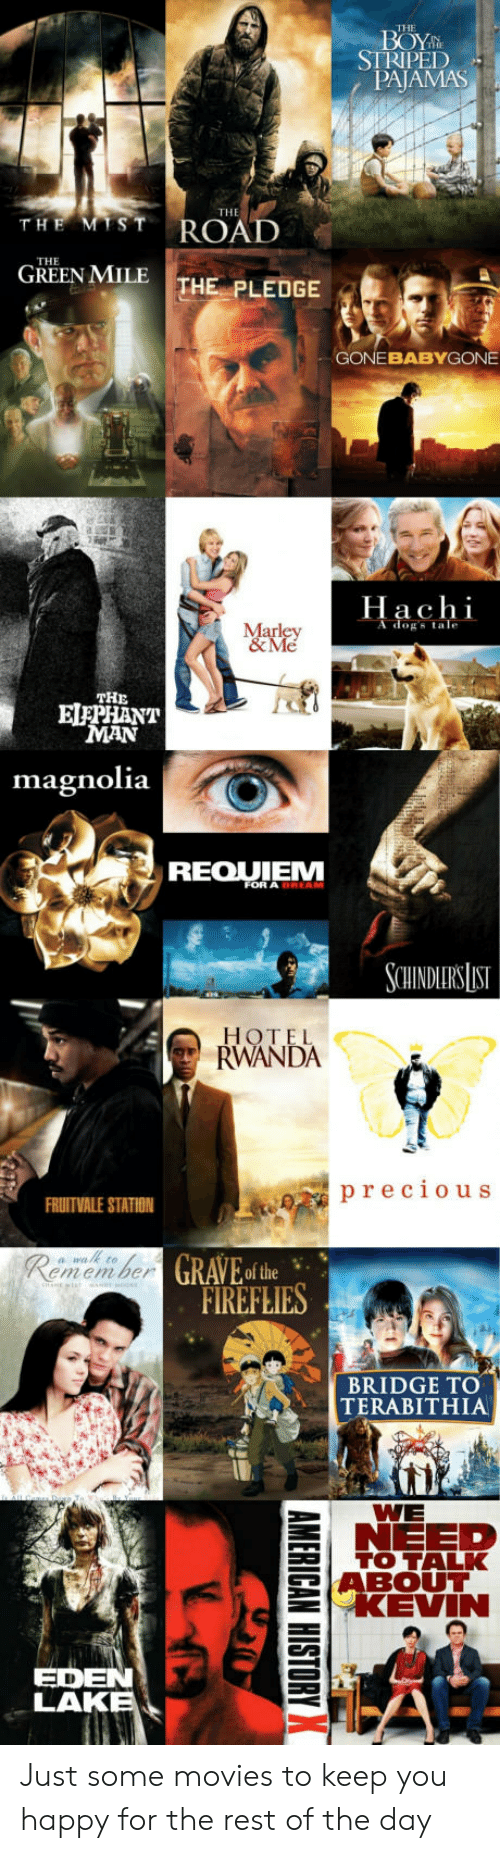 hachi: THE  STRIPED  PAJAMAS  THE  GREEN MILE THE PLEDGE  GONEBABYGONE  Hachi  A dogs tale  THE  ELEPHANT  MAN  magnolia  REOUIEM  FOR A  SCHINDERS LIST  HOTEL  RWANDA  precious  FRUITVALE STATION  GRAVEo the  emem ber  FIREFLIES  BRIDGE TO  TERABITHIA  WE  NEED  l TO TALK  5ABOUT  EKEVIN  EDEN  LAK Just some movies to keep you happy for the rest of the day